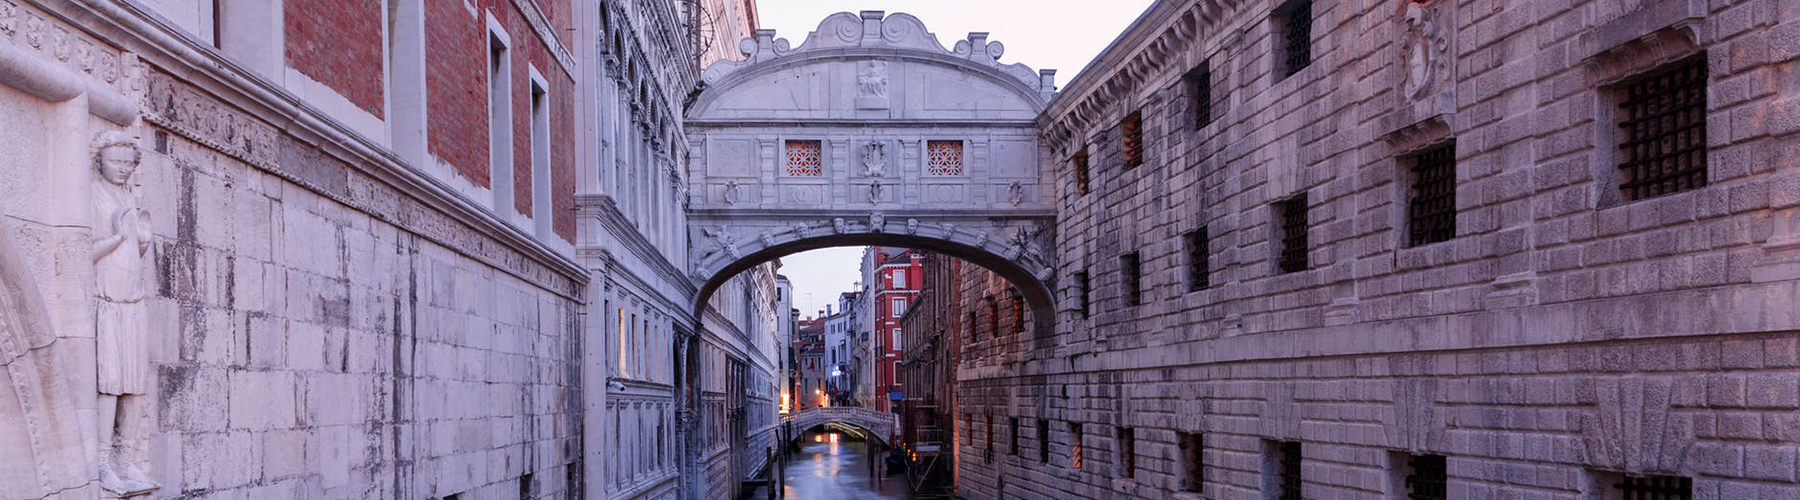 Venice – Hostels close to Bridge of Sighs. Maps for Venice, Photos and Reviews for each hostel in Venice.